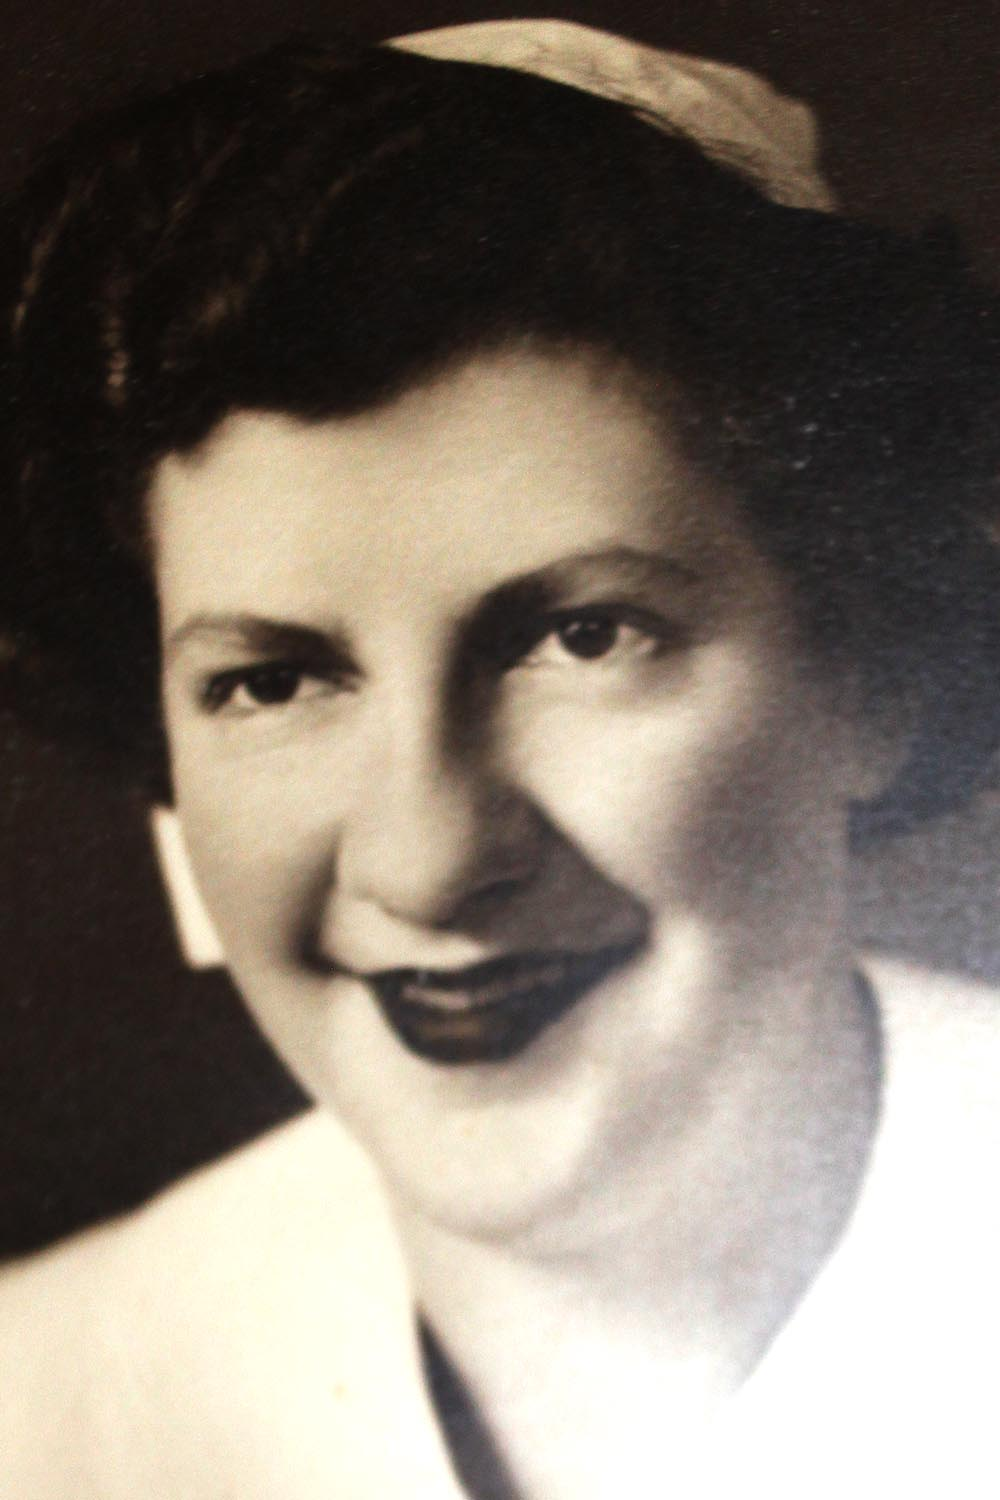 Jean Evans Nursing at Hutch during WW2.jpg